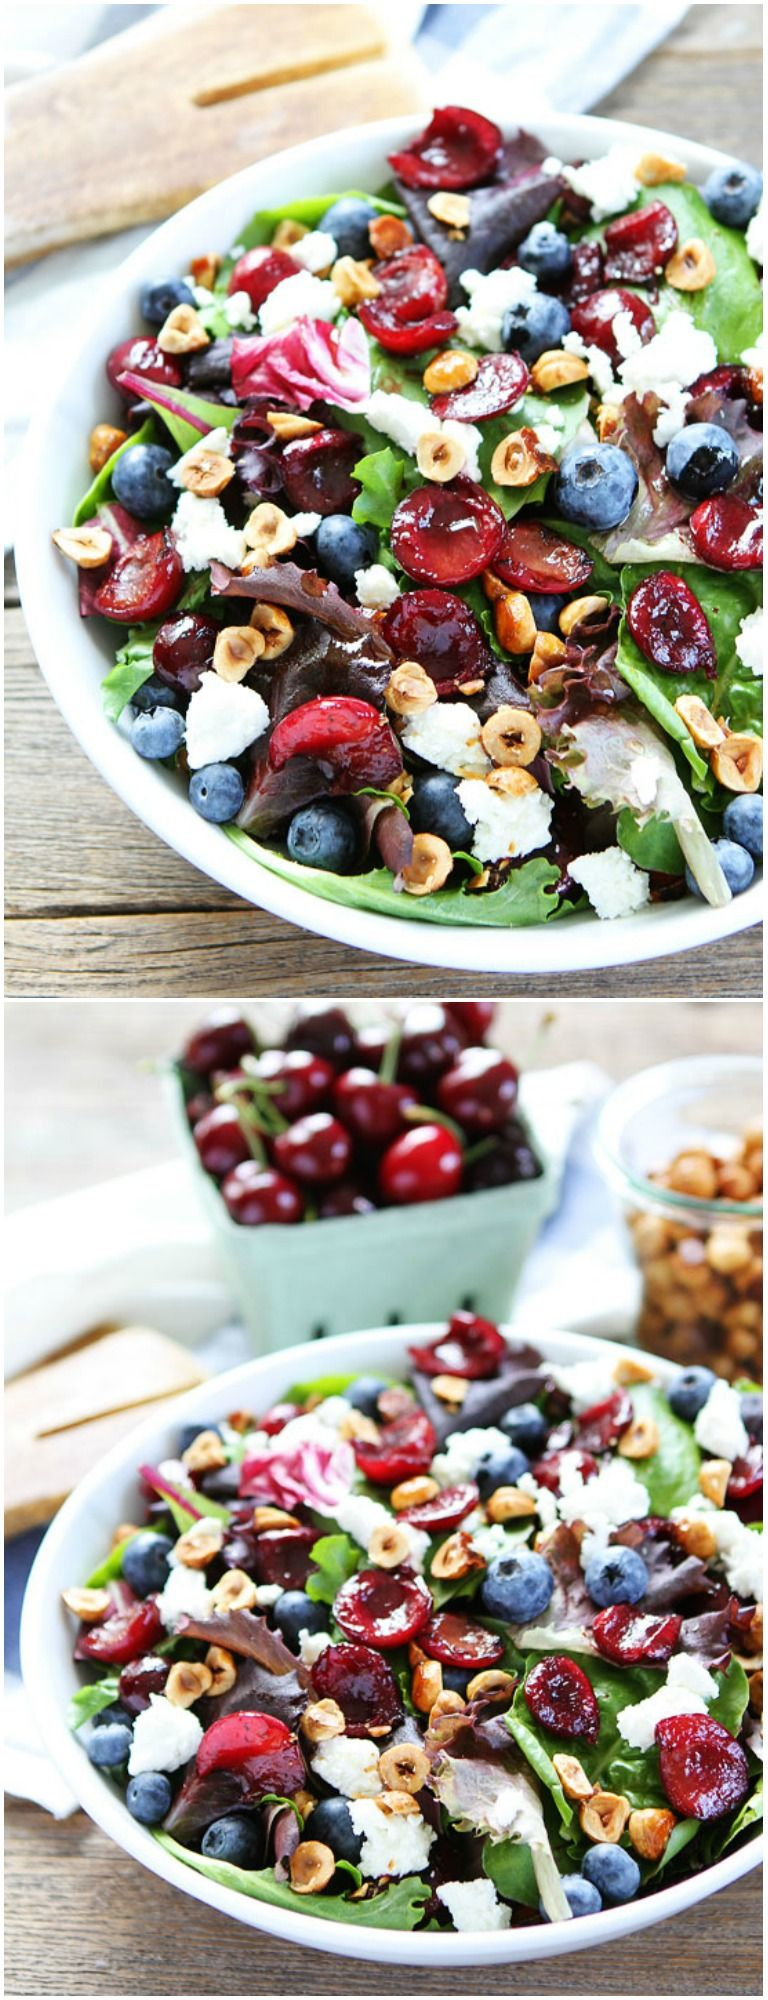 Balsamic Grilled Cherry, Blueberry, Goat Cheese, and Candied Hazelnut Salad on Mixed salad greens…